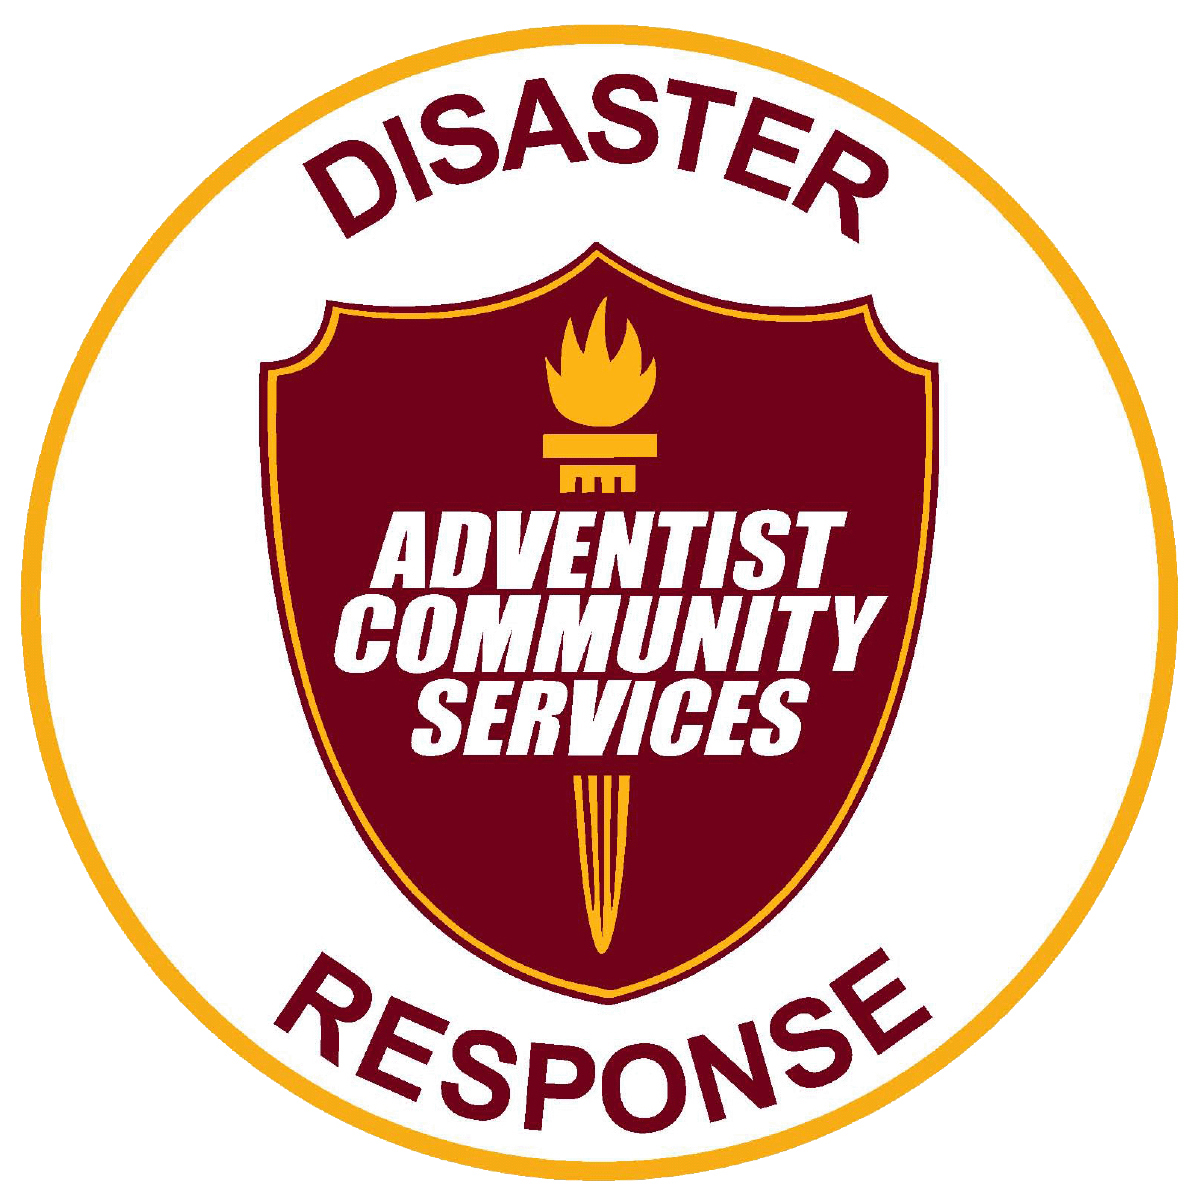 adventist community services�disaster response outlook